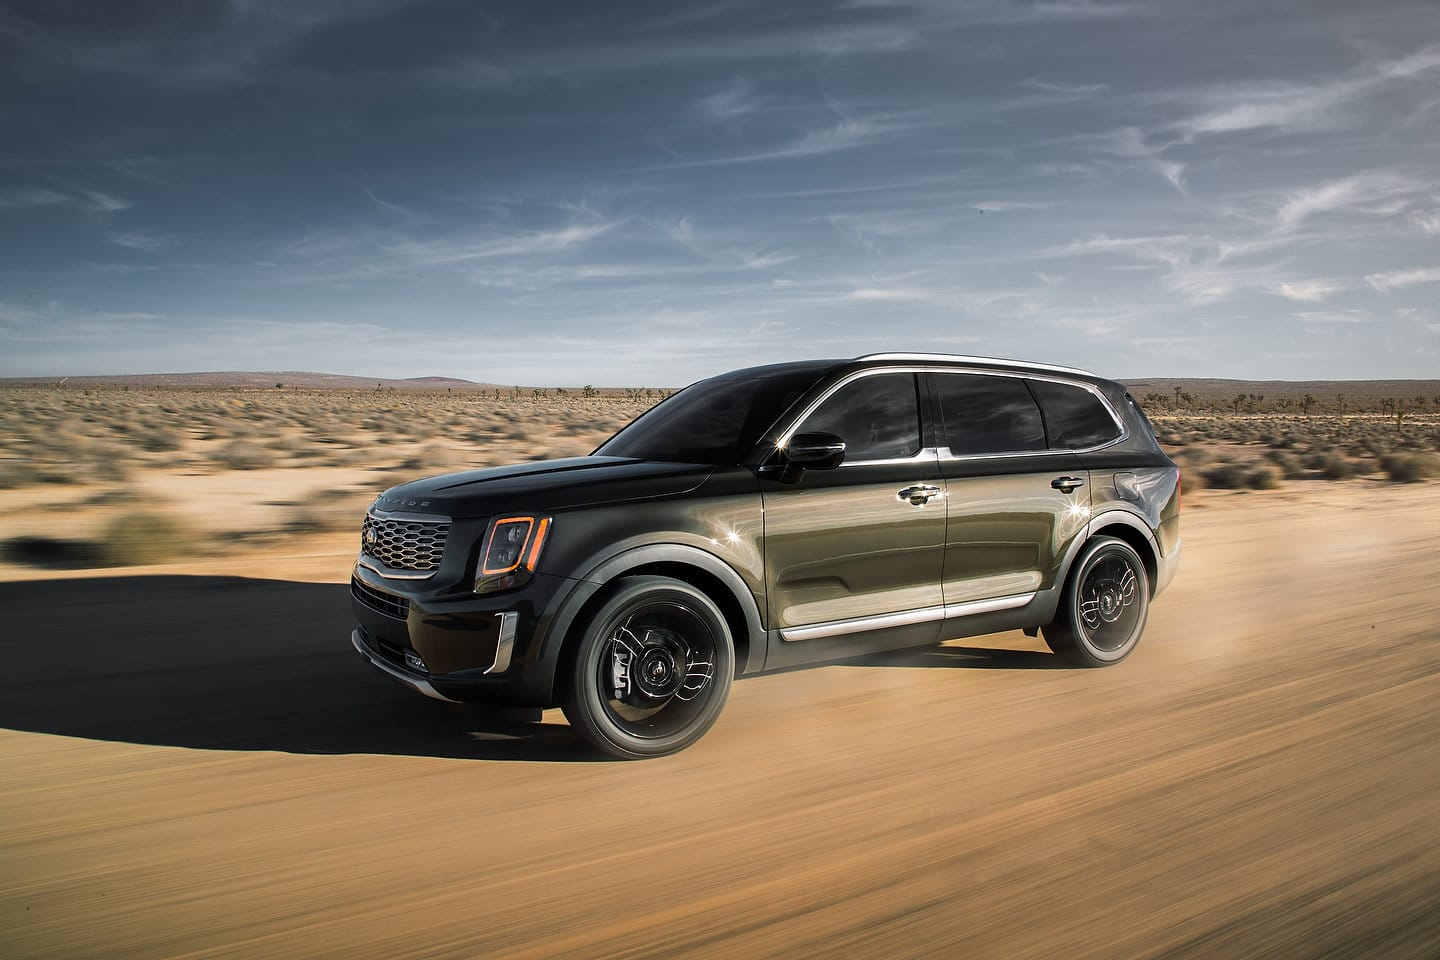 2020 Kia Telluride Canadian Price And Release Date Announced - 2022 Kia K900 Canada Release Date, Color Options, Rumor